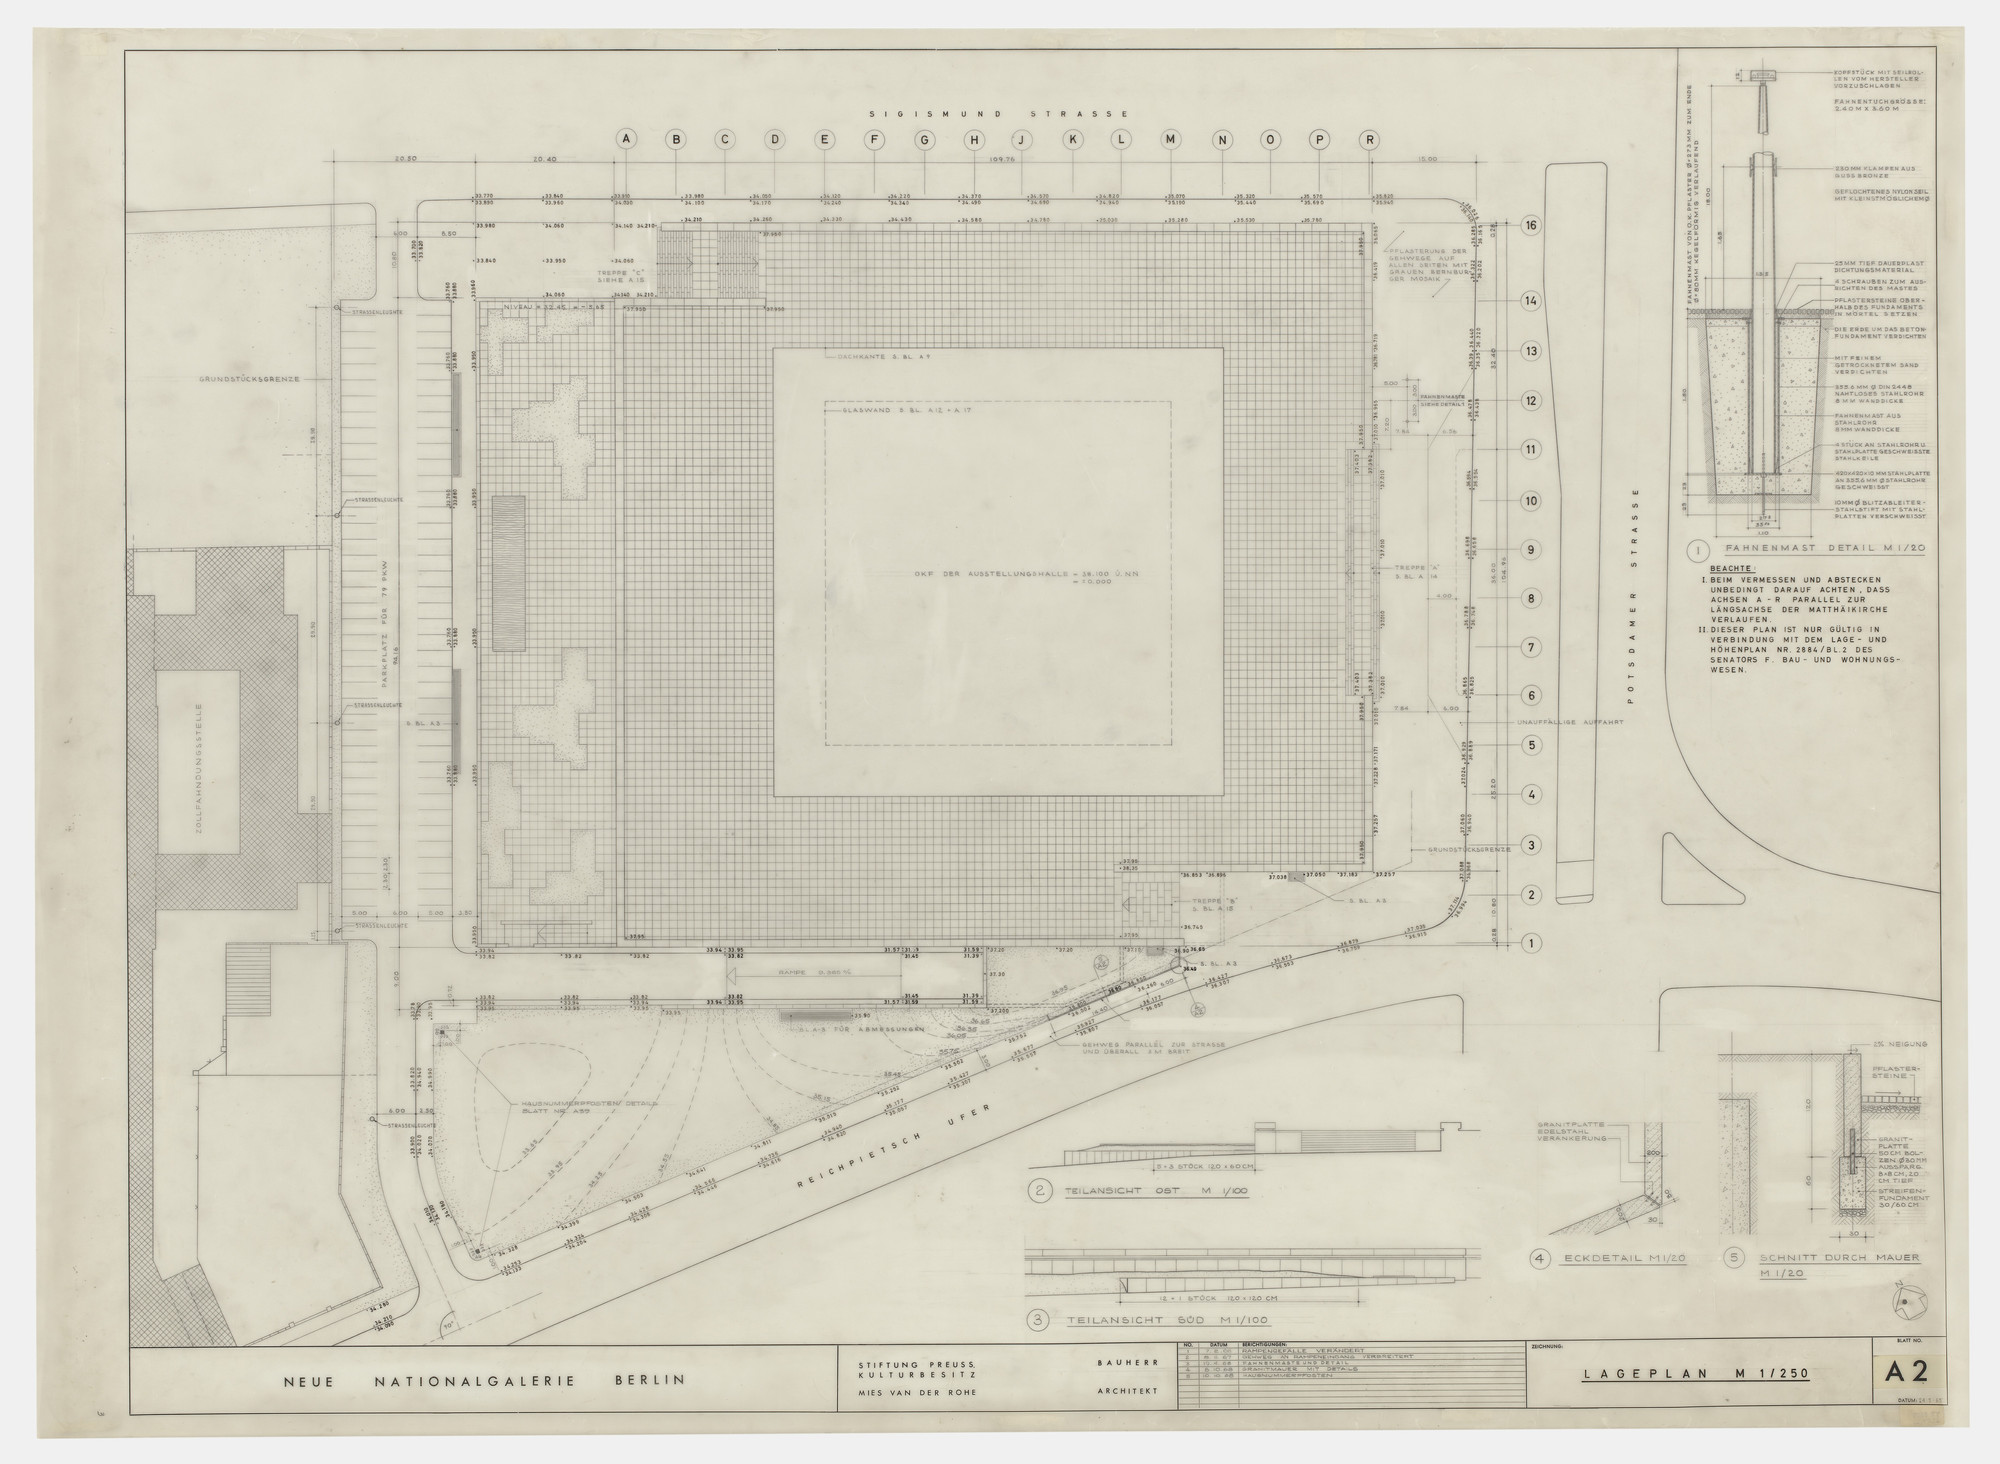 Ludwig Mies van der Rohe. New National Gallery, Berlin, Germany (Site plan). c. 1962-68